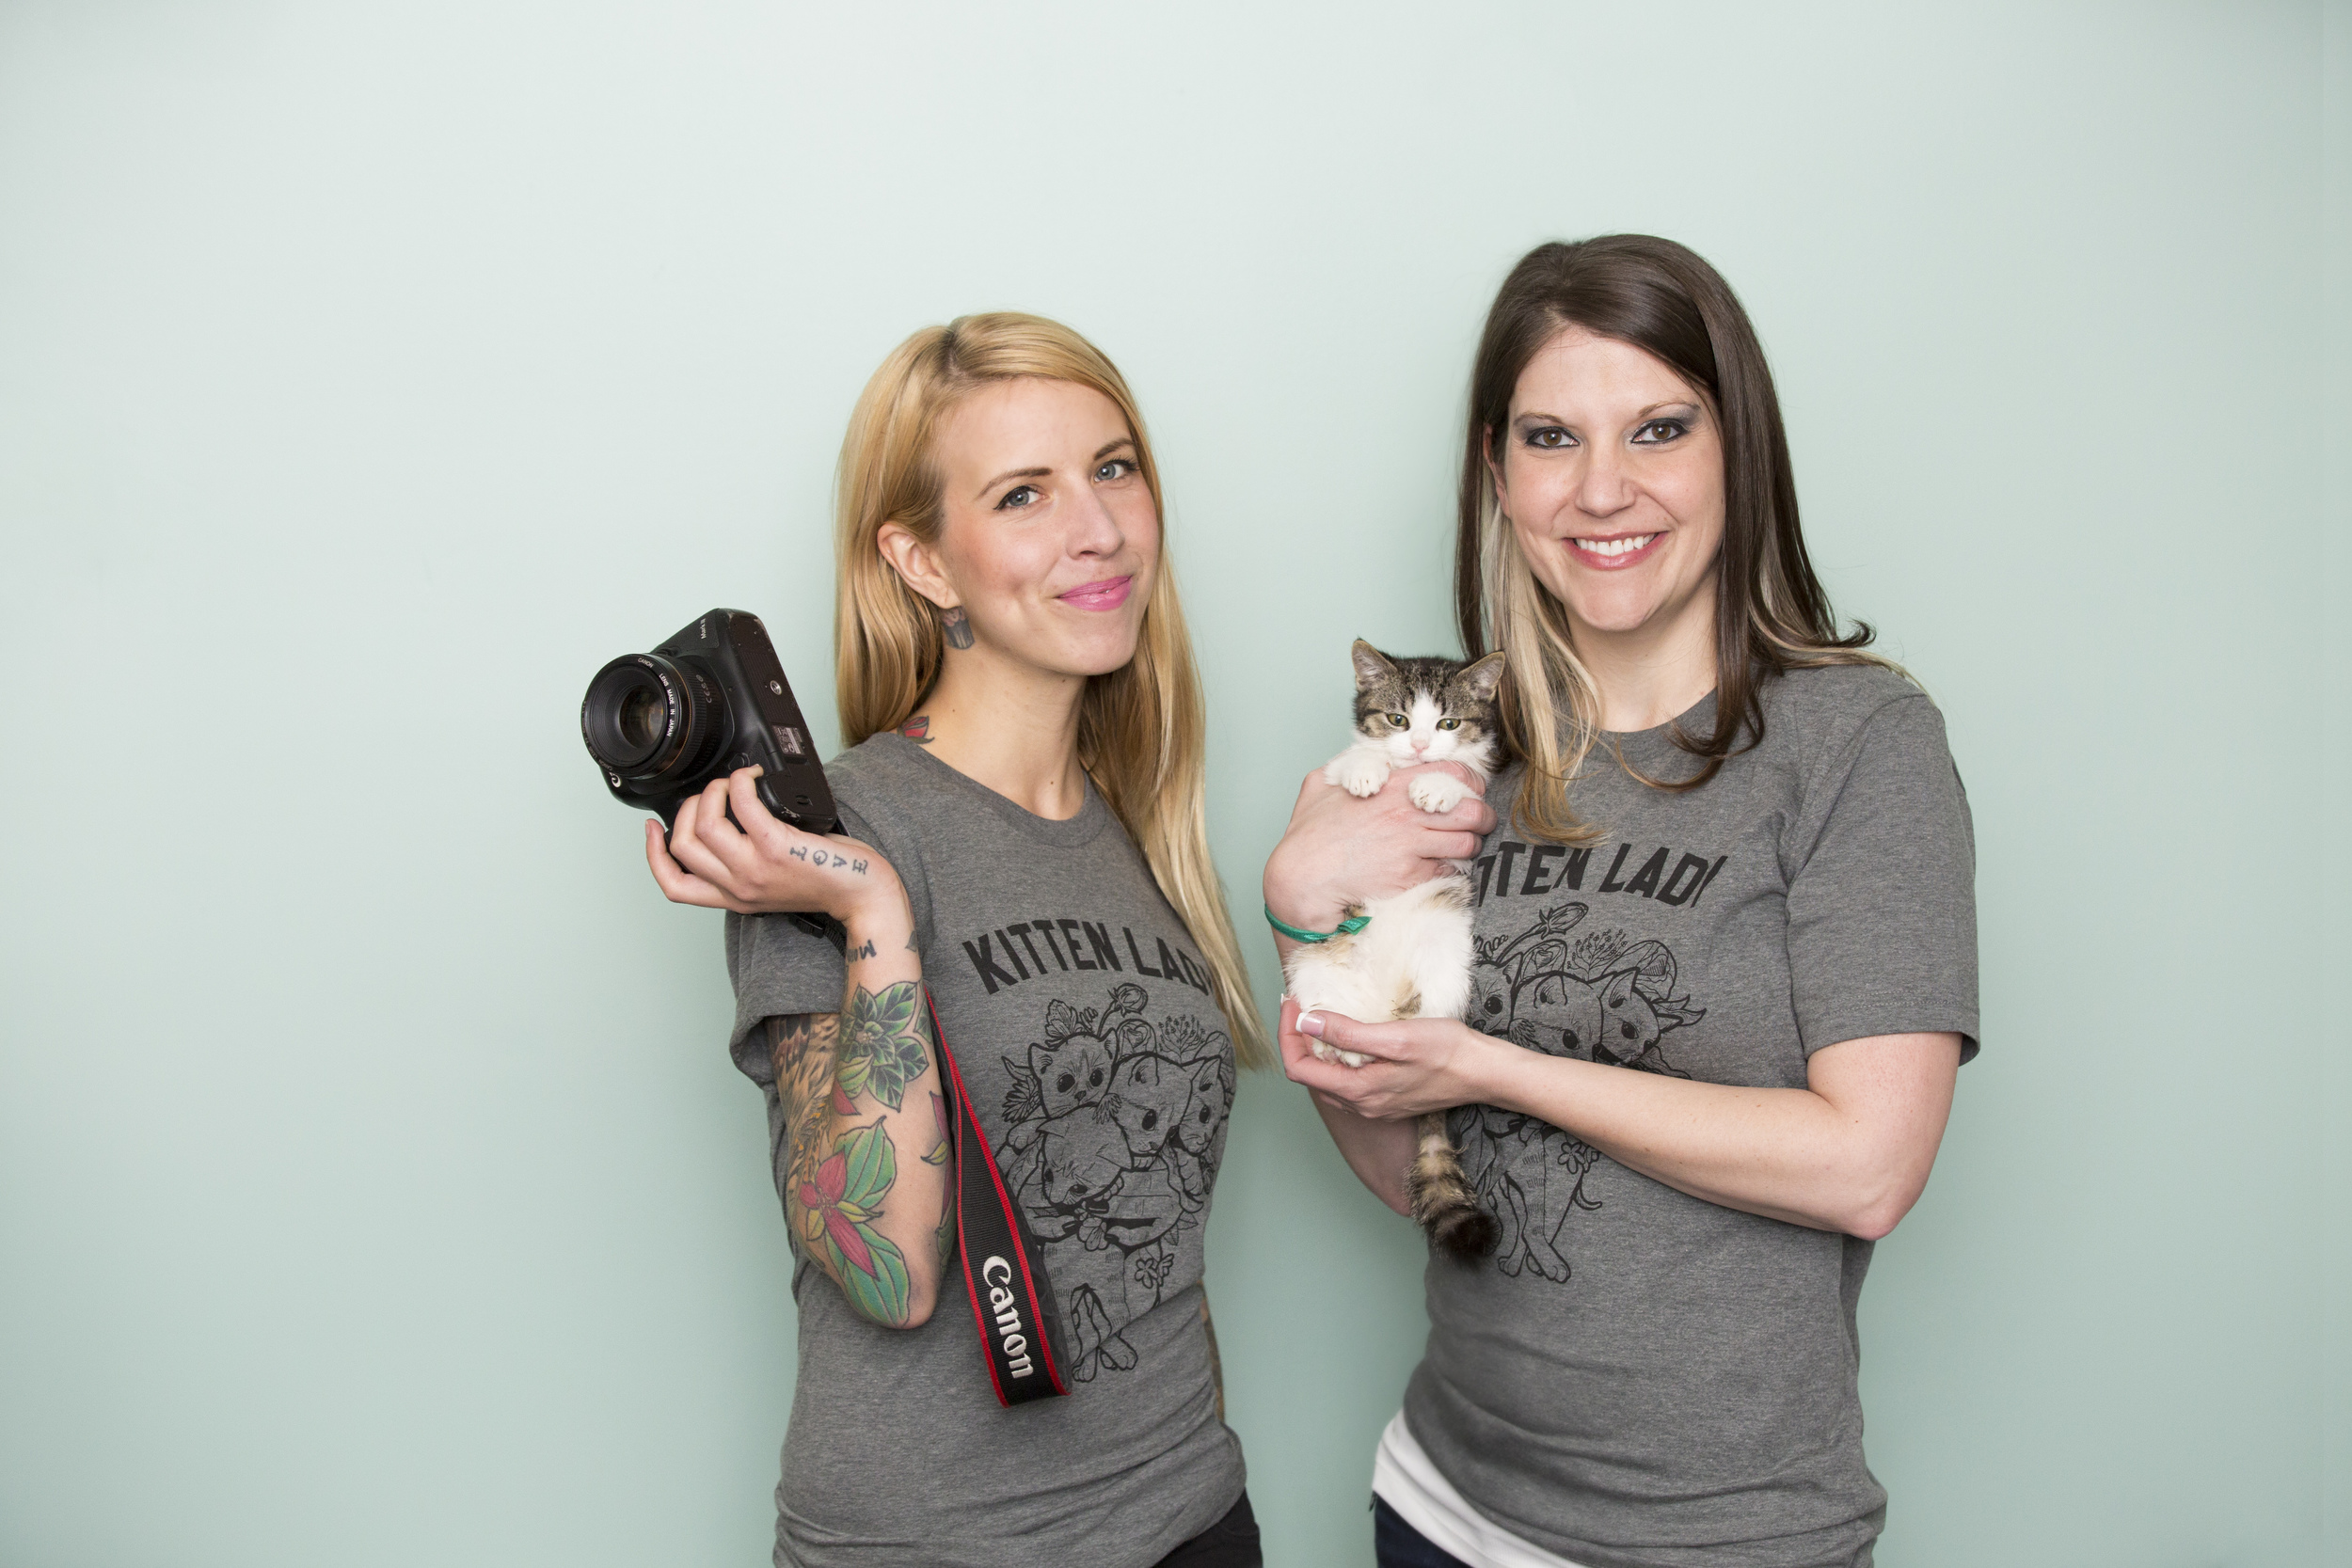 Hannah Shaw (Kitten Lady), Elizabeth Putsche (Photographers for Animals), and Marlin!